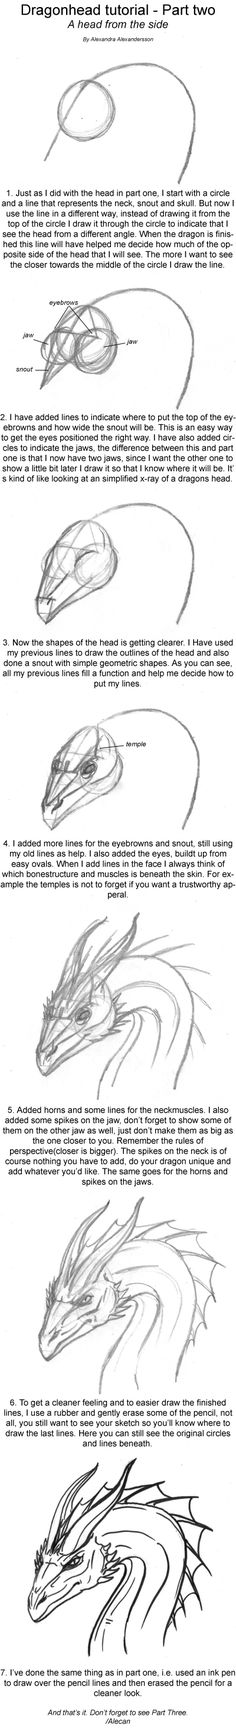 Dragonhead Tutorial part two by *alecan on deviantART